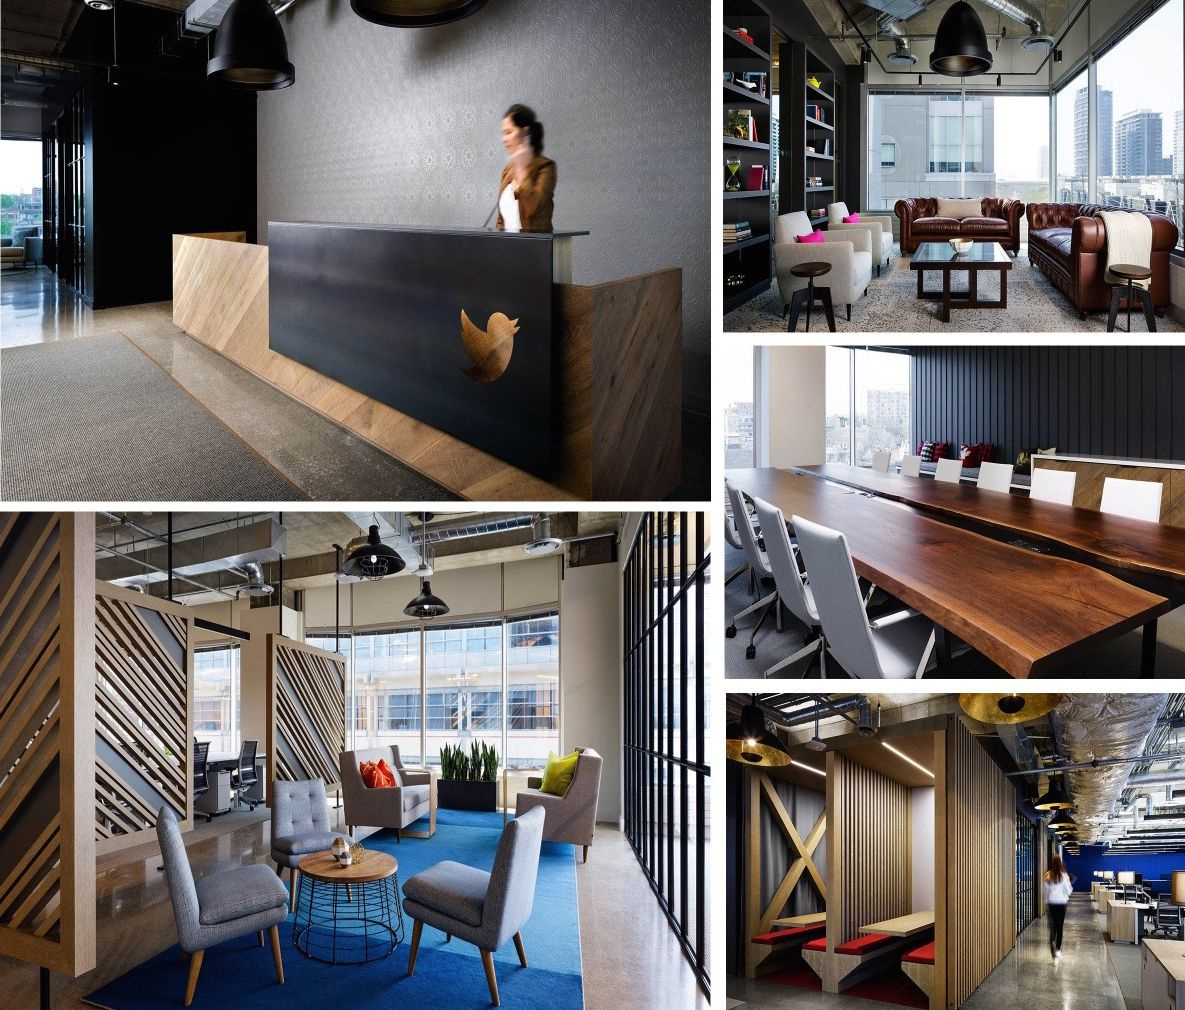 Twitter diseño firma b h arquitectos twitter design office inspo the office